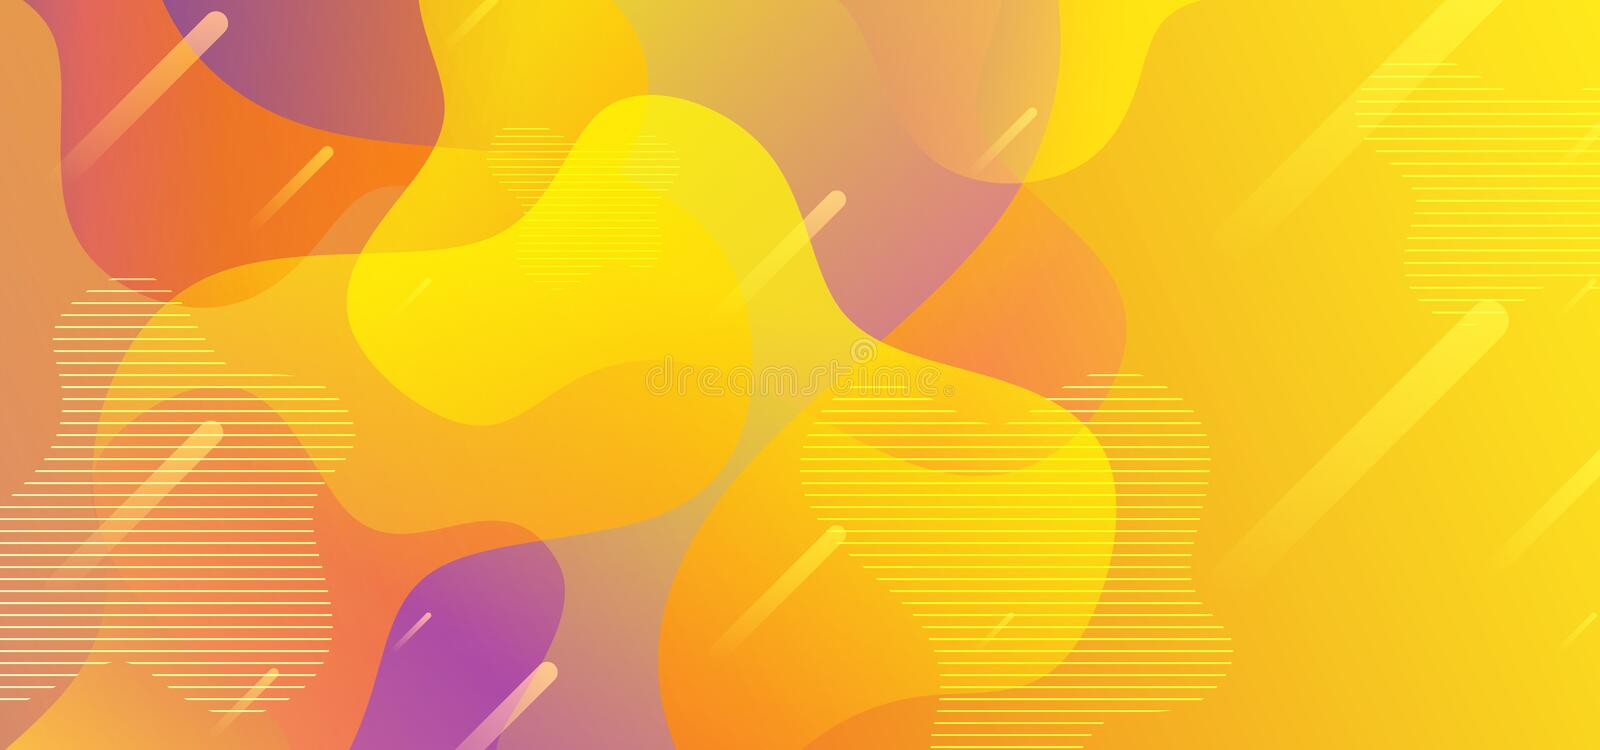 Background abstract liquid shapes with yellow flow fluid gradient colorful vector eps 10. Geometric modern trendy style. Template, curve, wave, design, graphic royalty free illustration